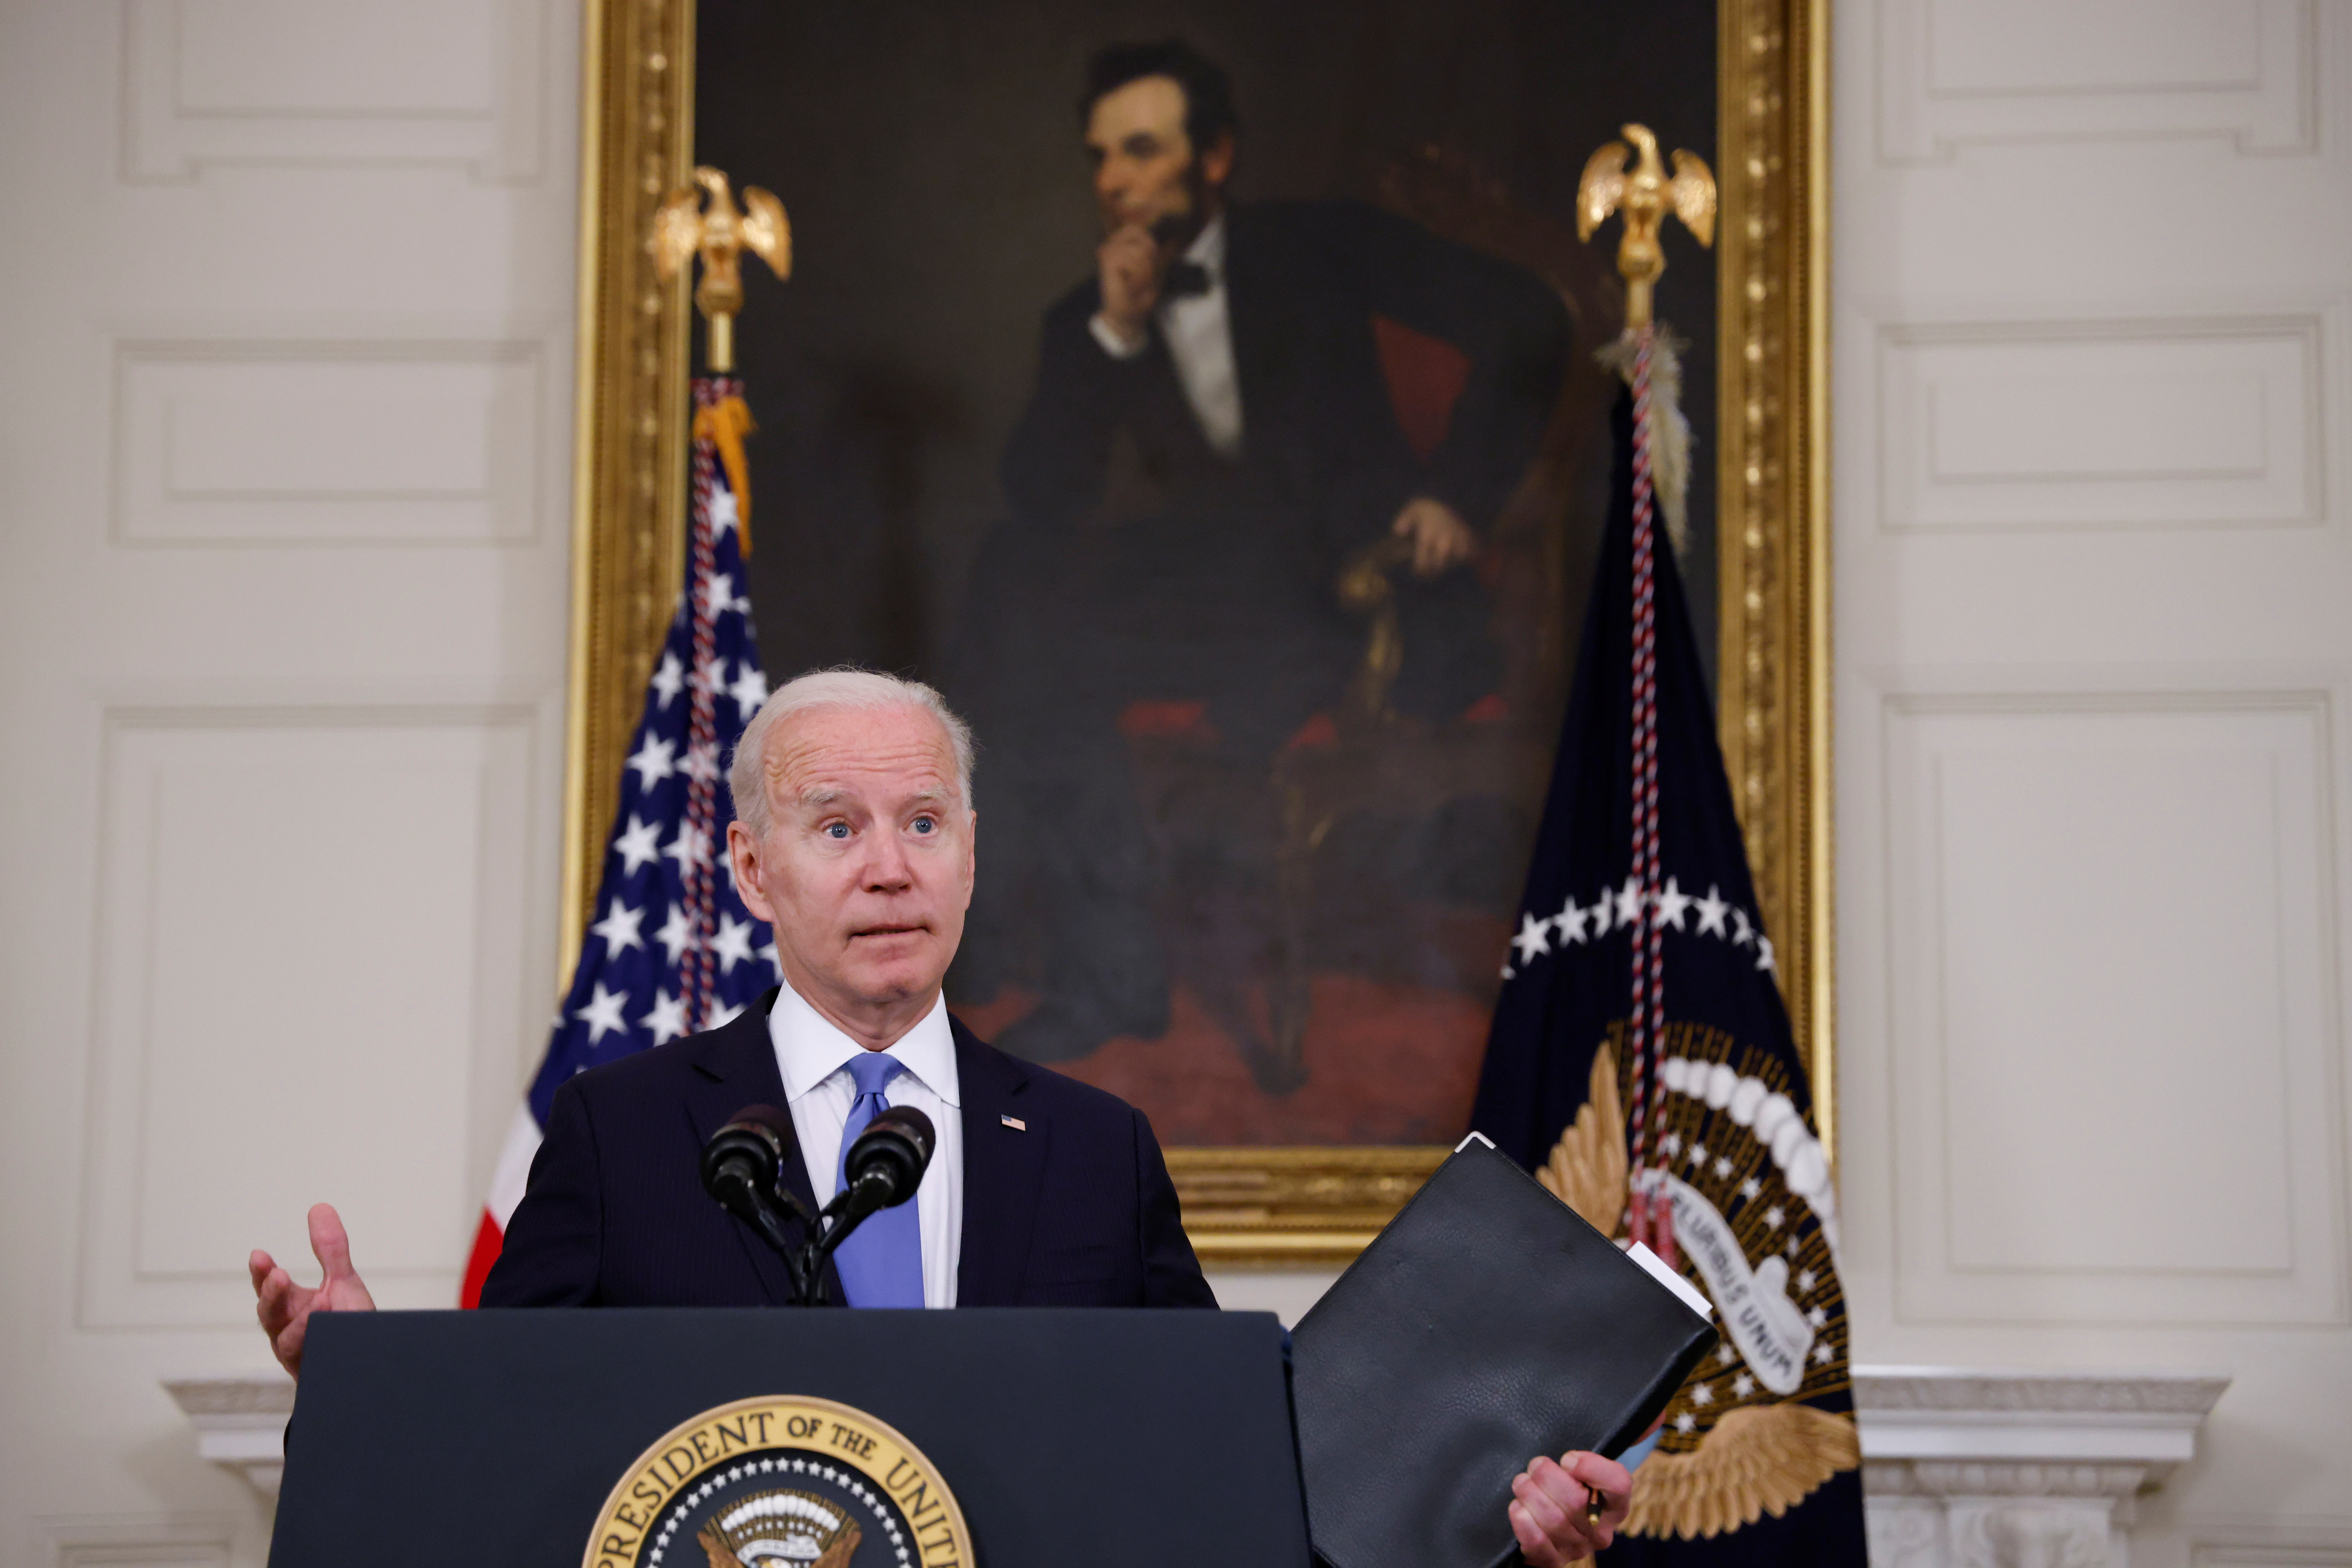 U.S. President Joe Biden delivers remarks on the state of his American Rescue Plan from the State Dining Room at the White House in Washington, D.C., U.S., May 5, 2021. REUTERS/Jonathan Ernst